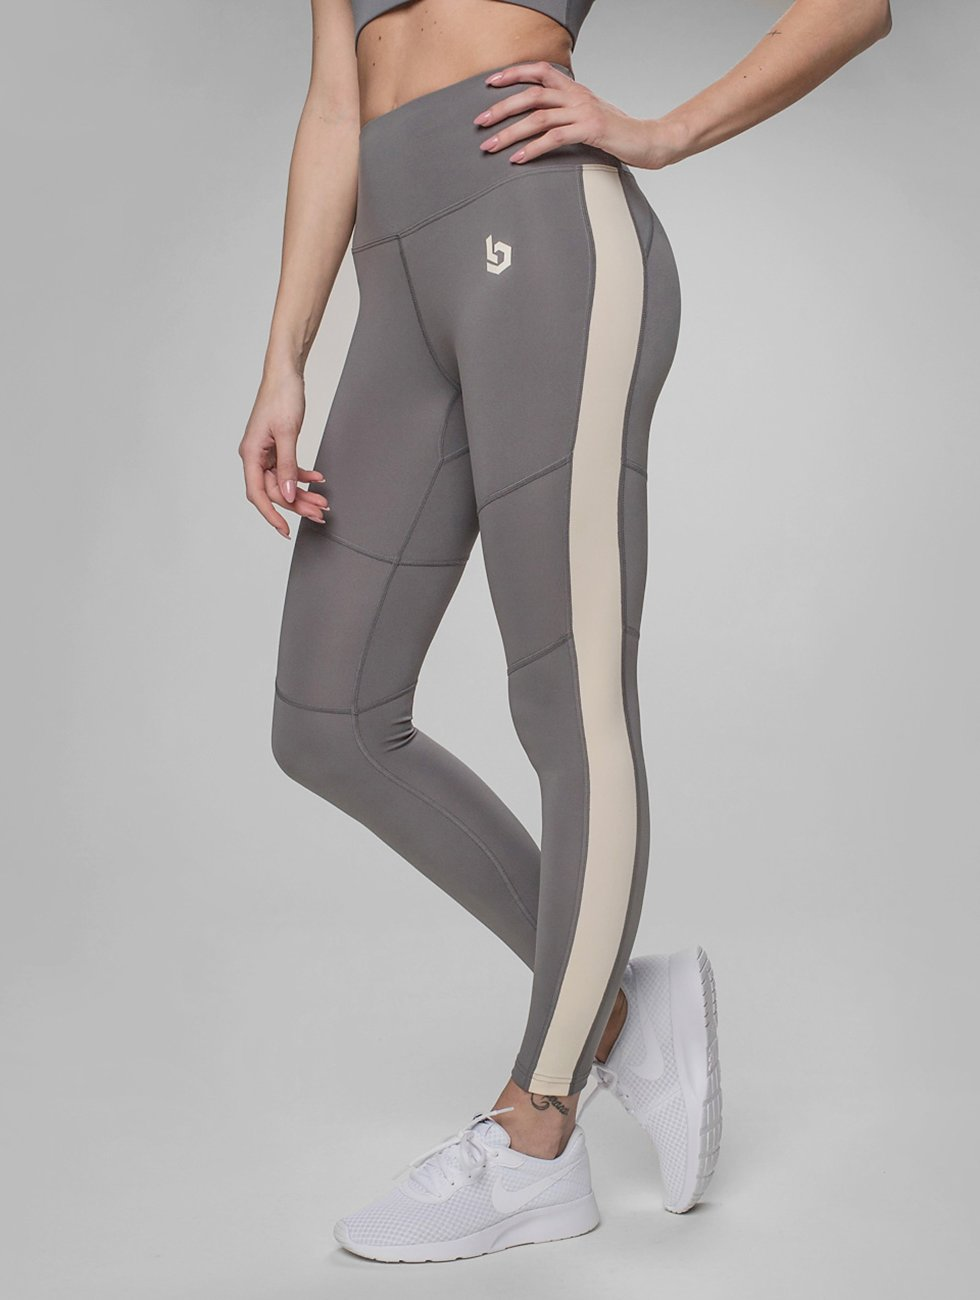 Beyond Limits Legging Statement grau